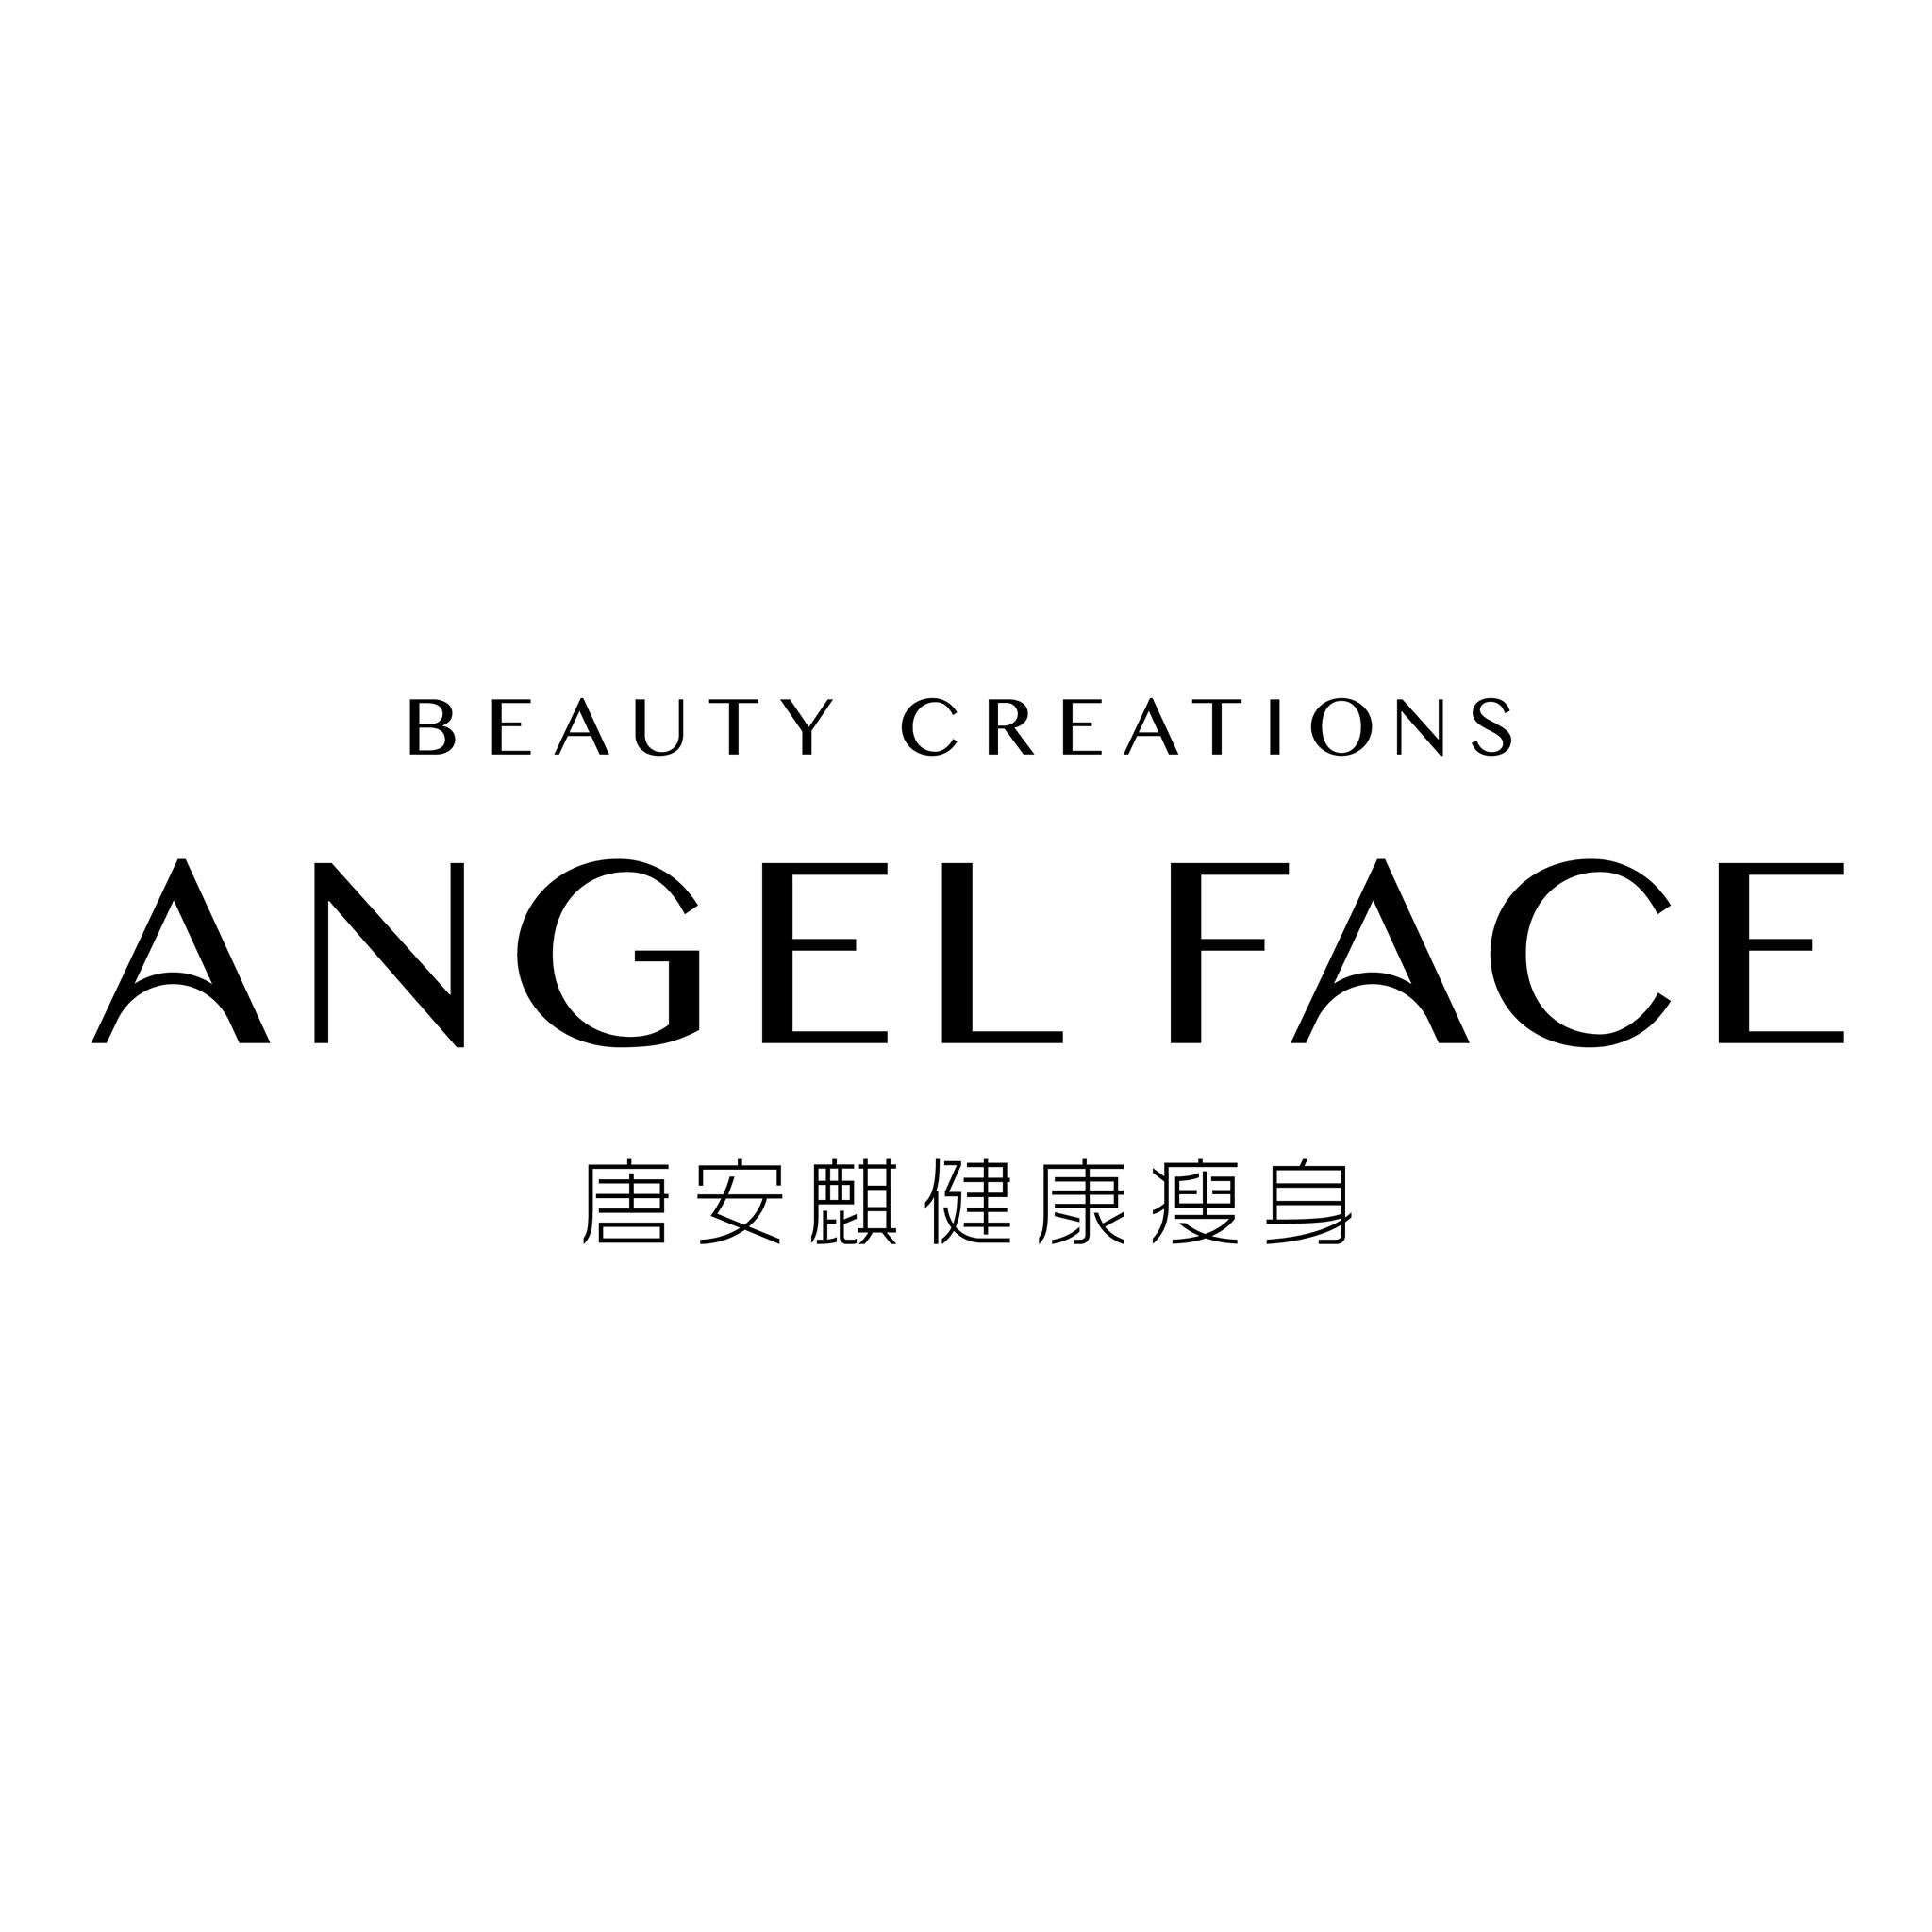 美容院 Beauty Salon 集團Angel Face (中環店) @ 香港美容網 HK Beauty Salon